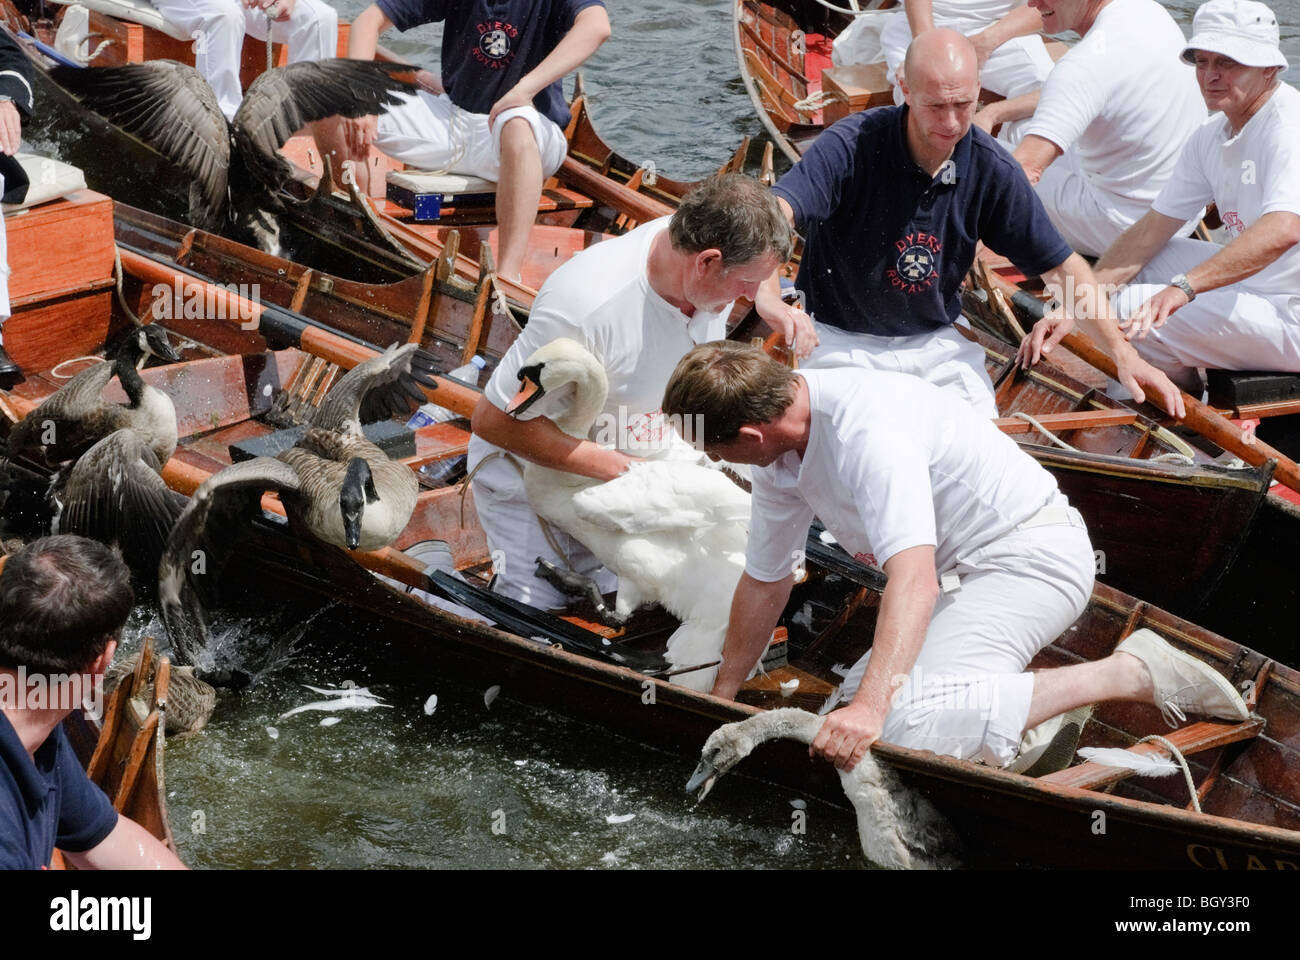 The Annual Swan Upping Ceremony at Henley upon Thames. - Stock Image